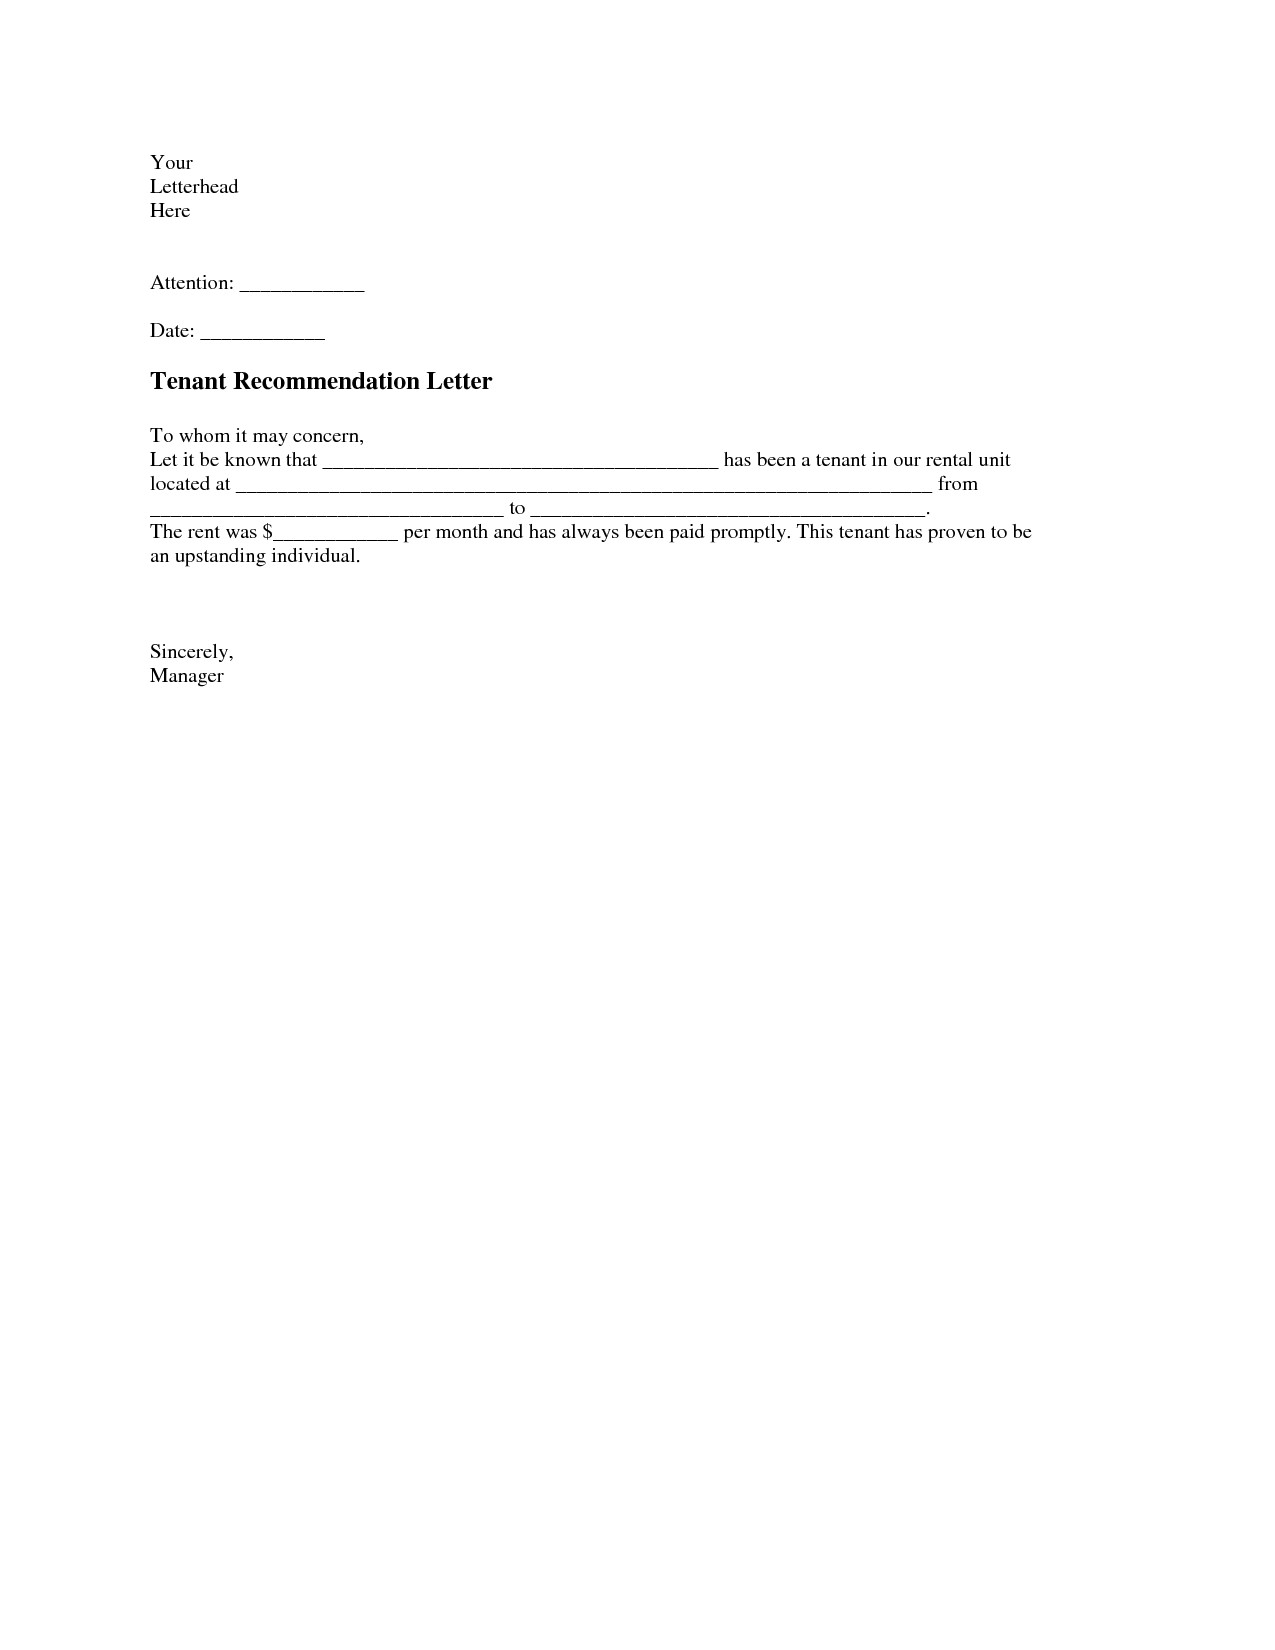 Landlord Letter Of Recommendation Tenant Re Mendation Letter A Tenant Re Mendation